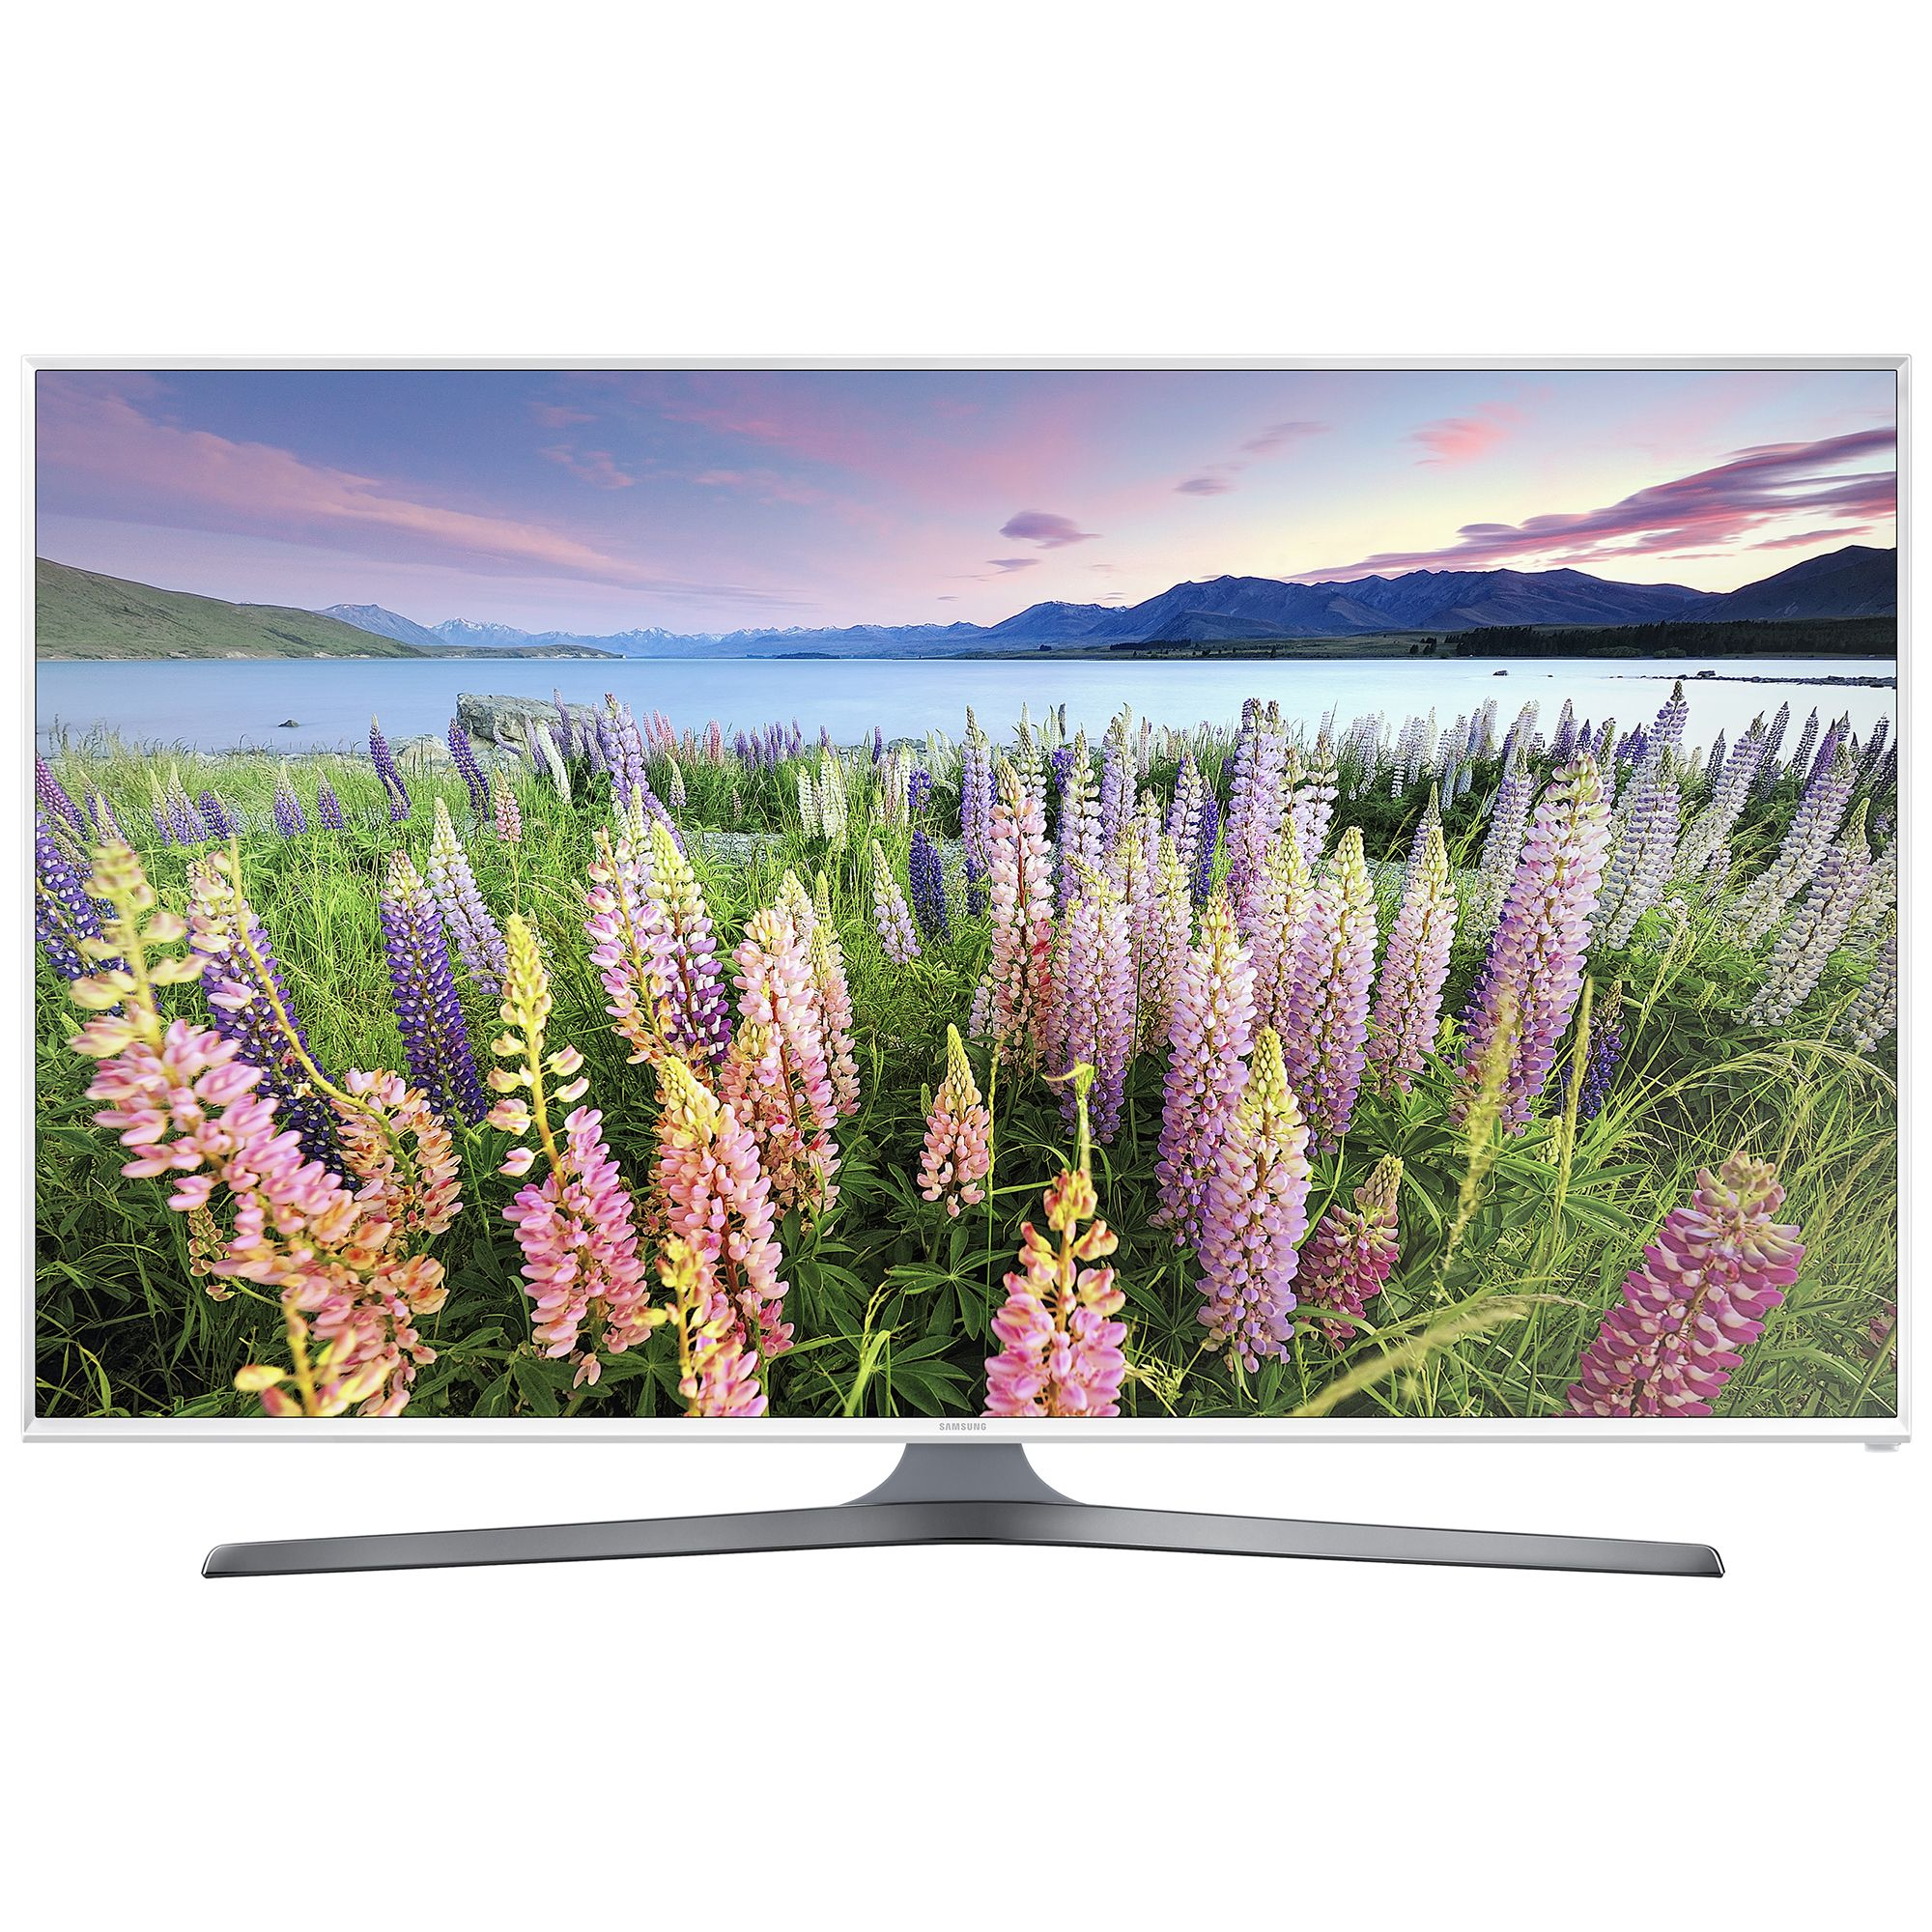 Televizor Smart LED Samsung 101 cm Full HD 40J5510 Quad Core USB CI+ WiFi OS Tizen White